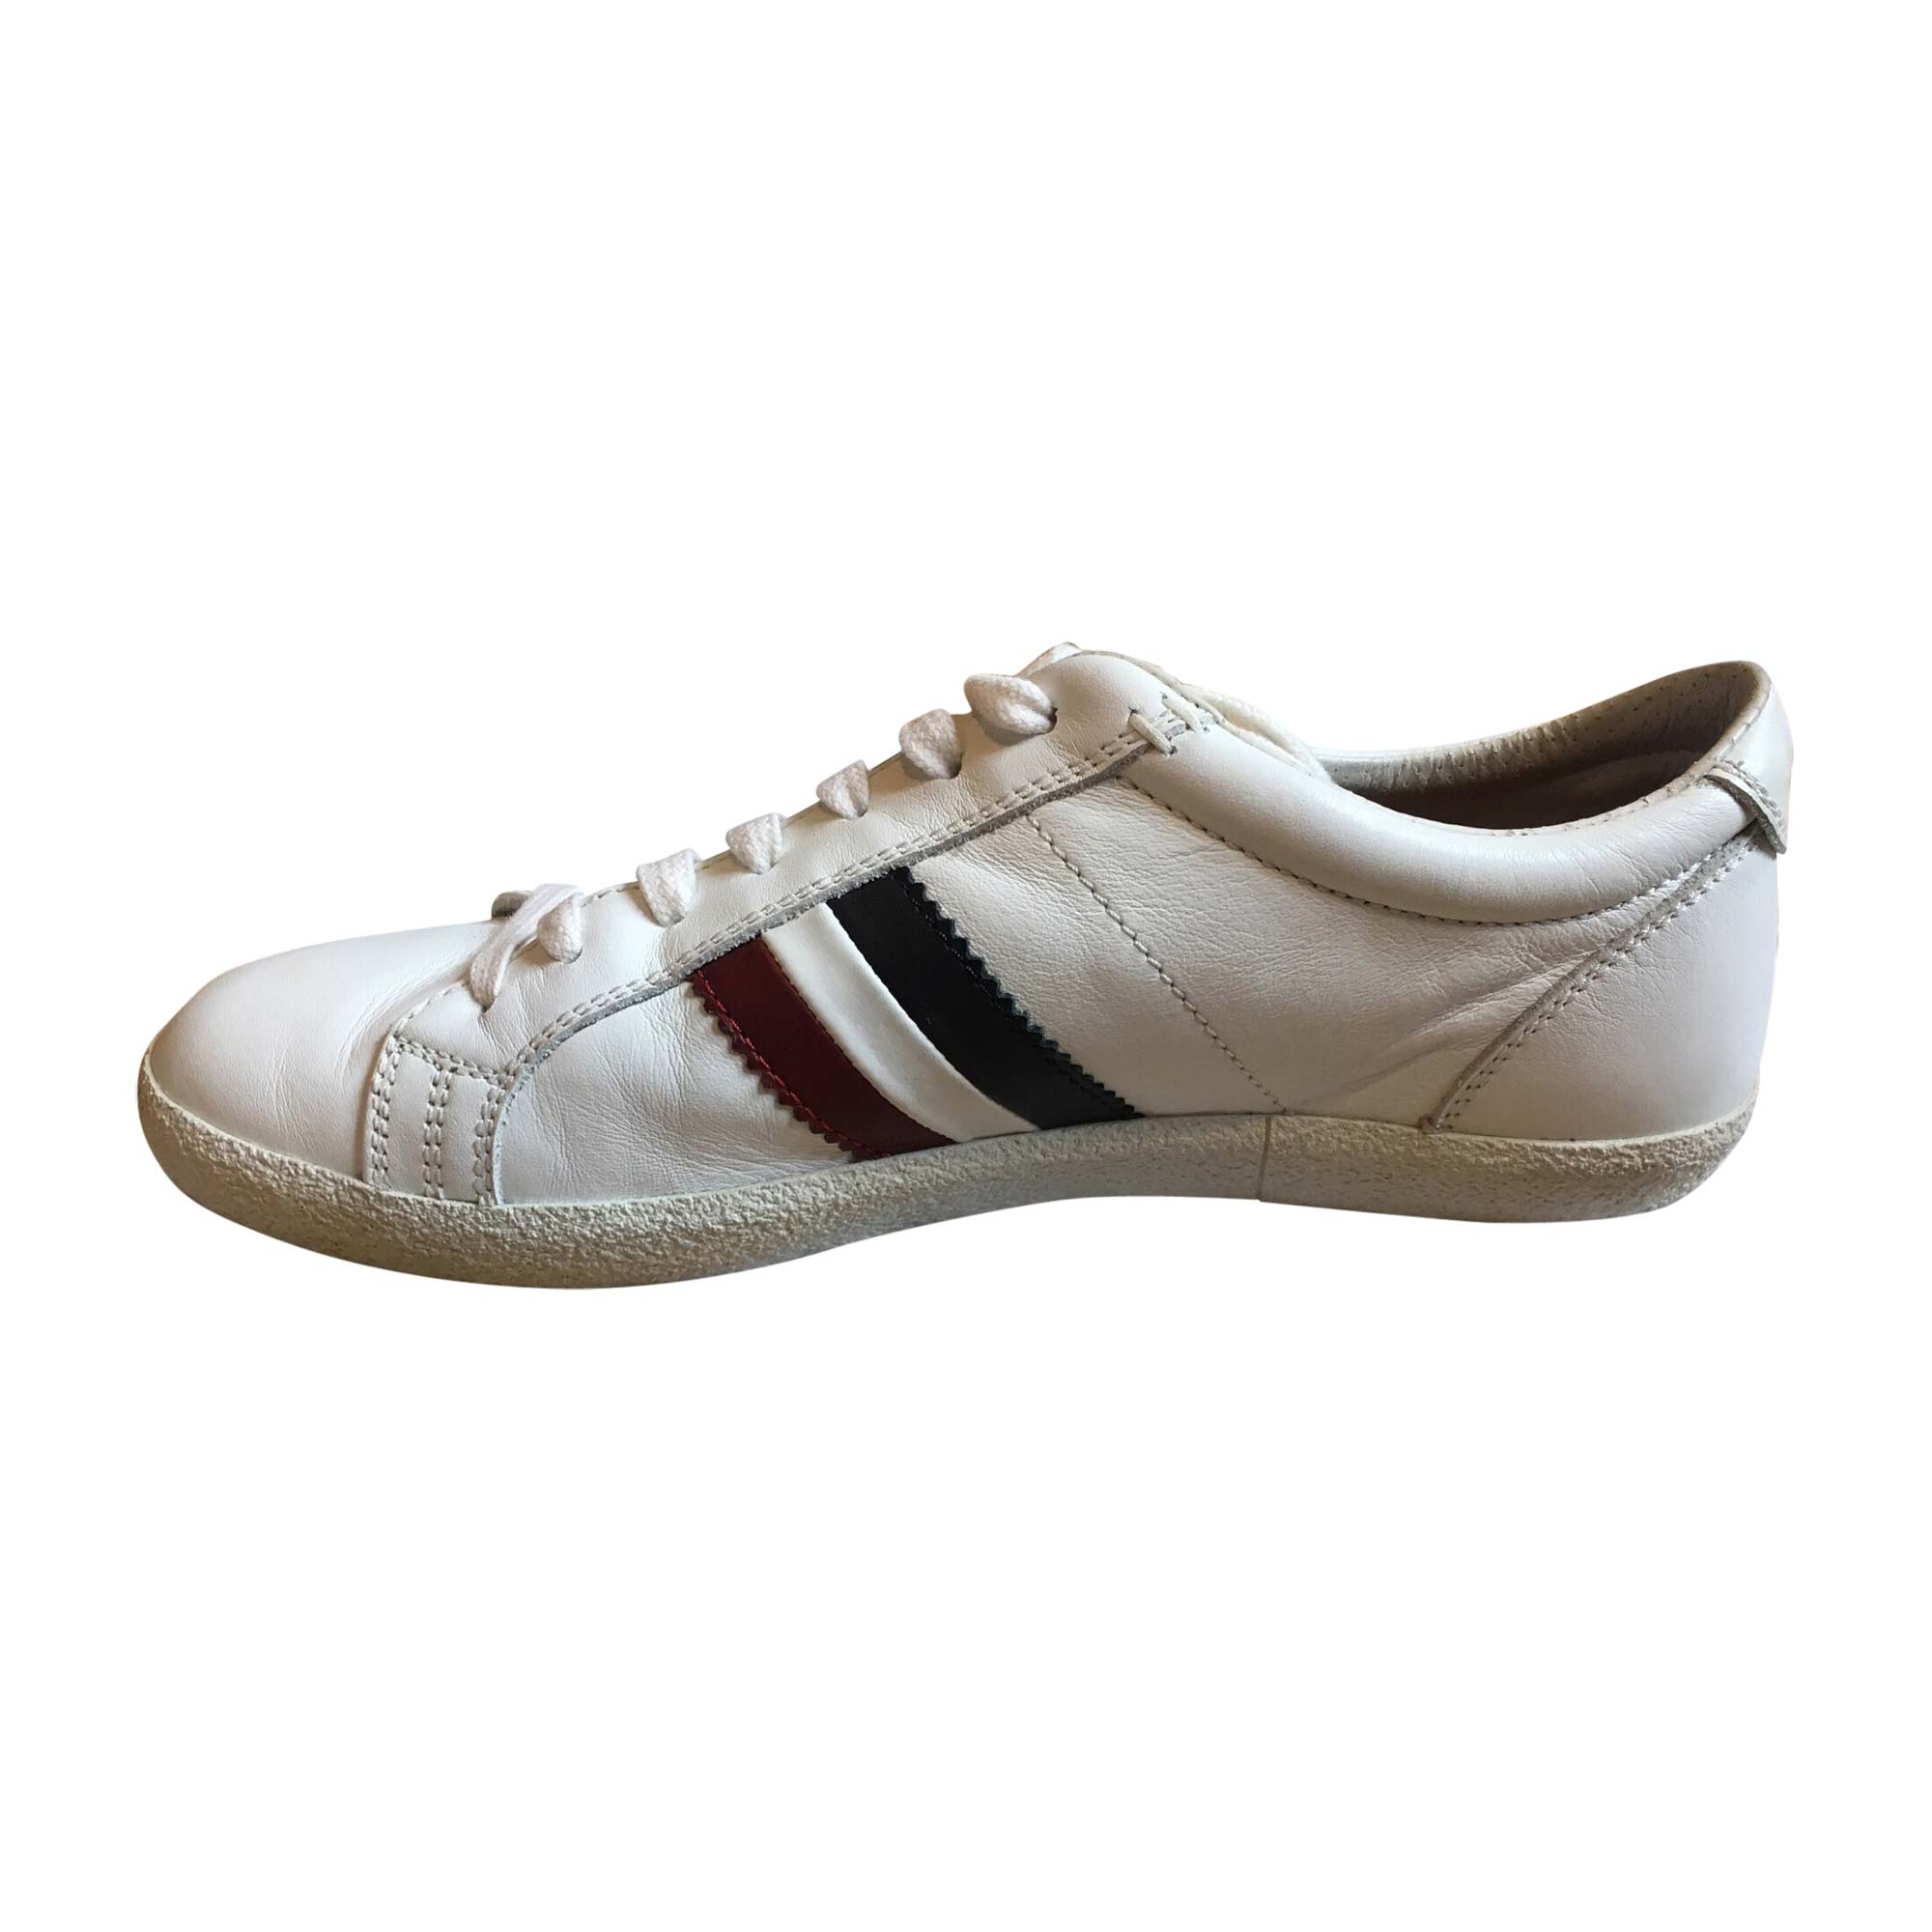 Sneakers MONCLER White, off-white, ecru